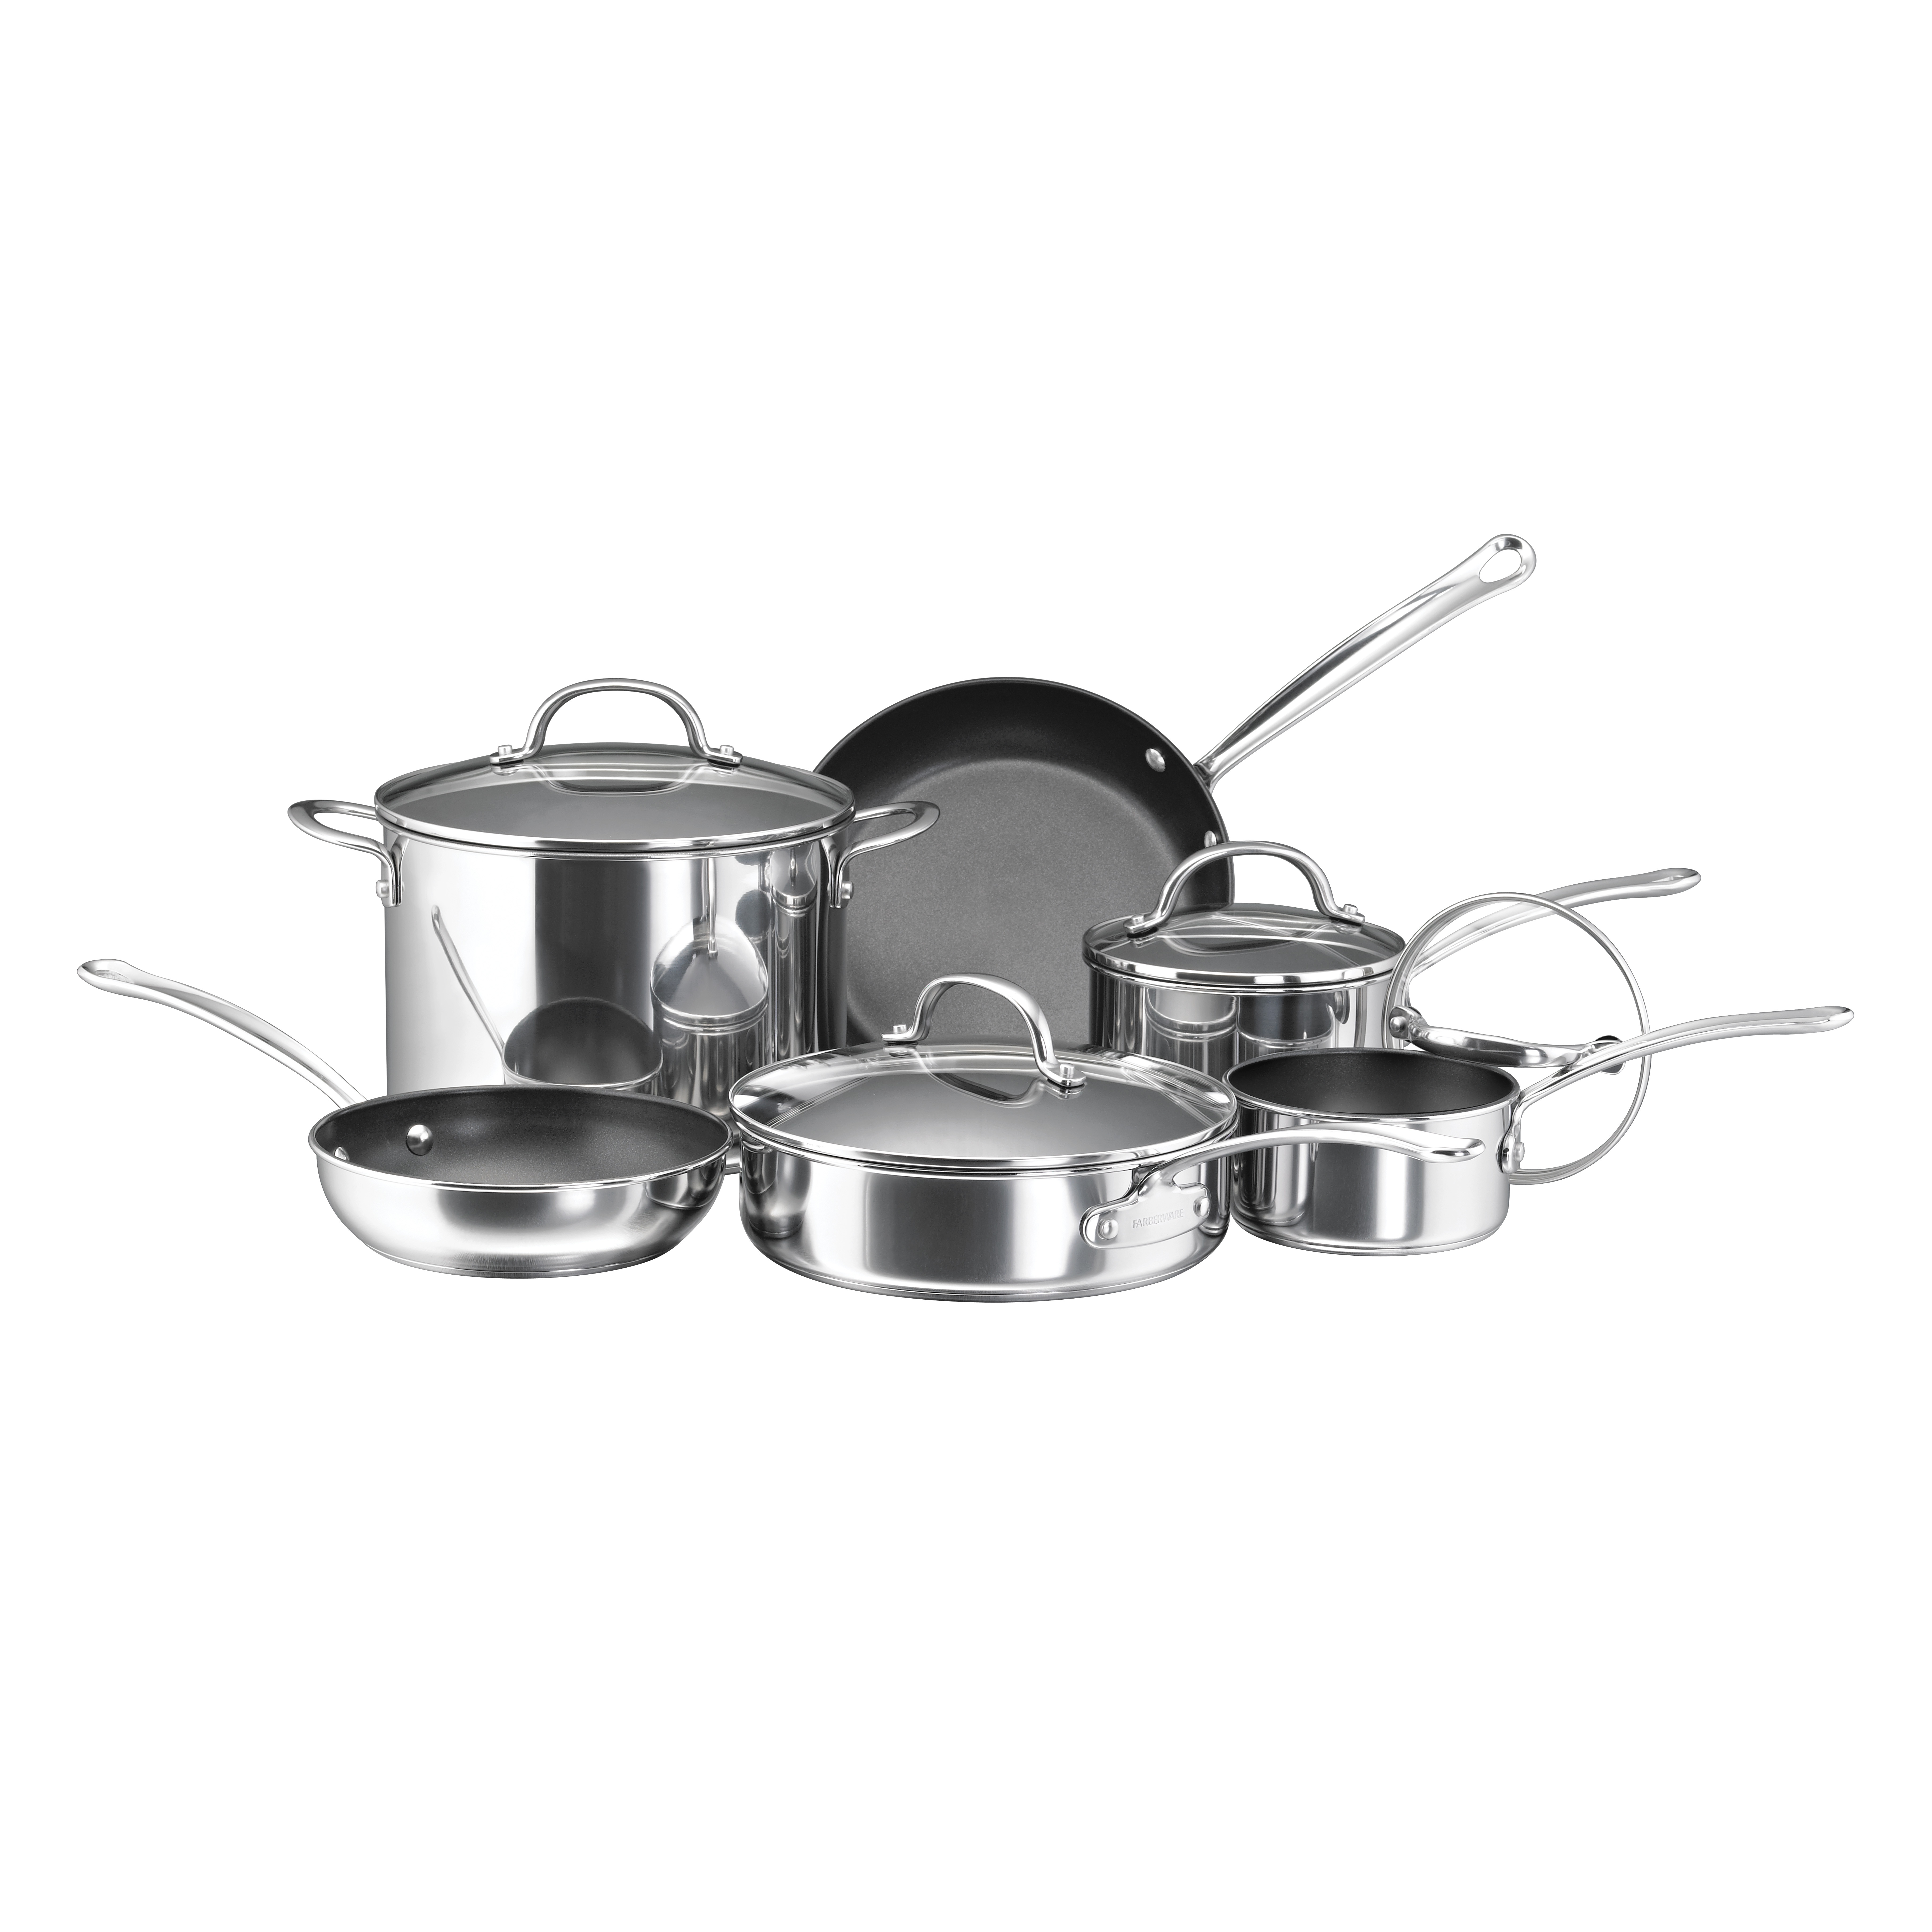 Farberware - Farberware 10-Piece Set